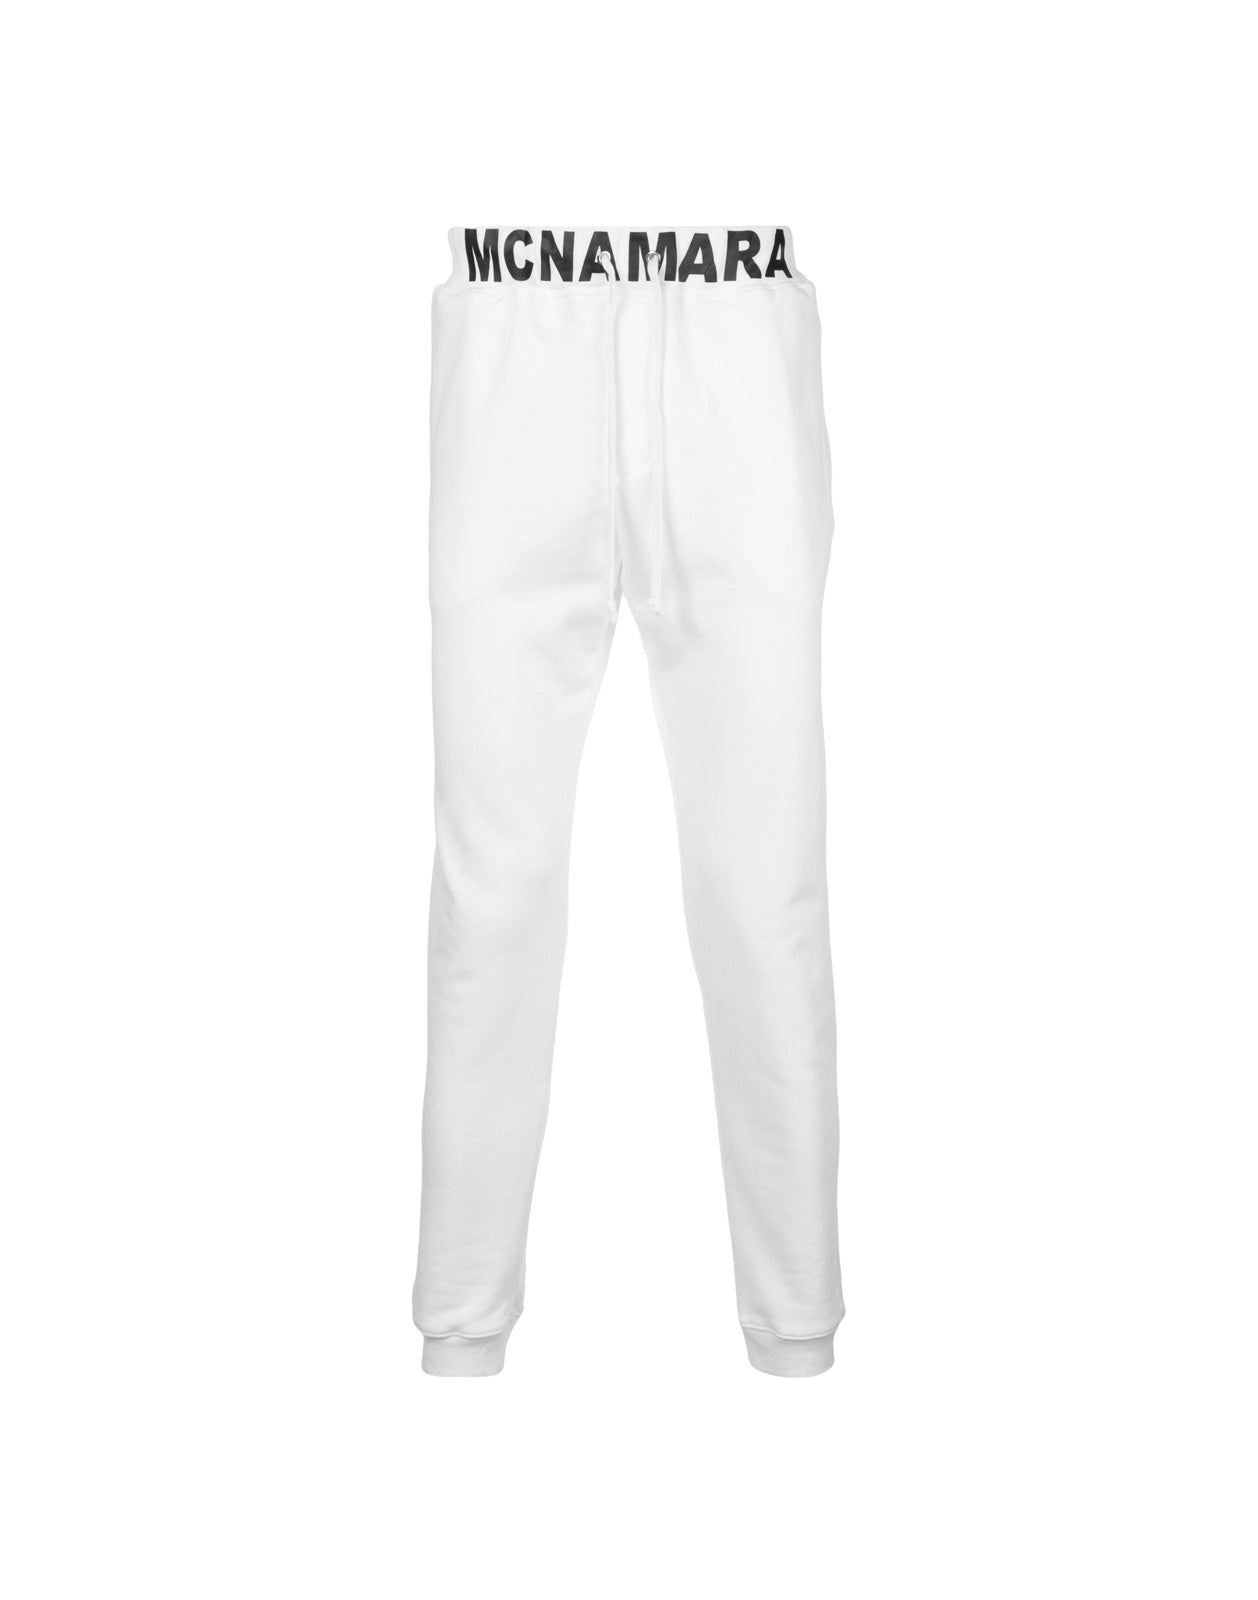 Daybreak MCNAMARA Graphic Jogger Pants